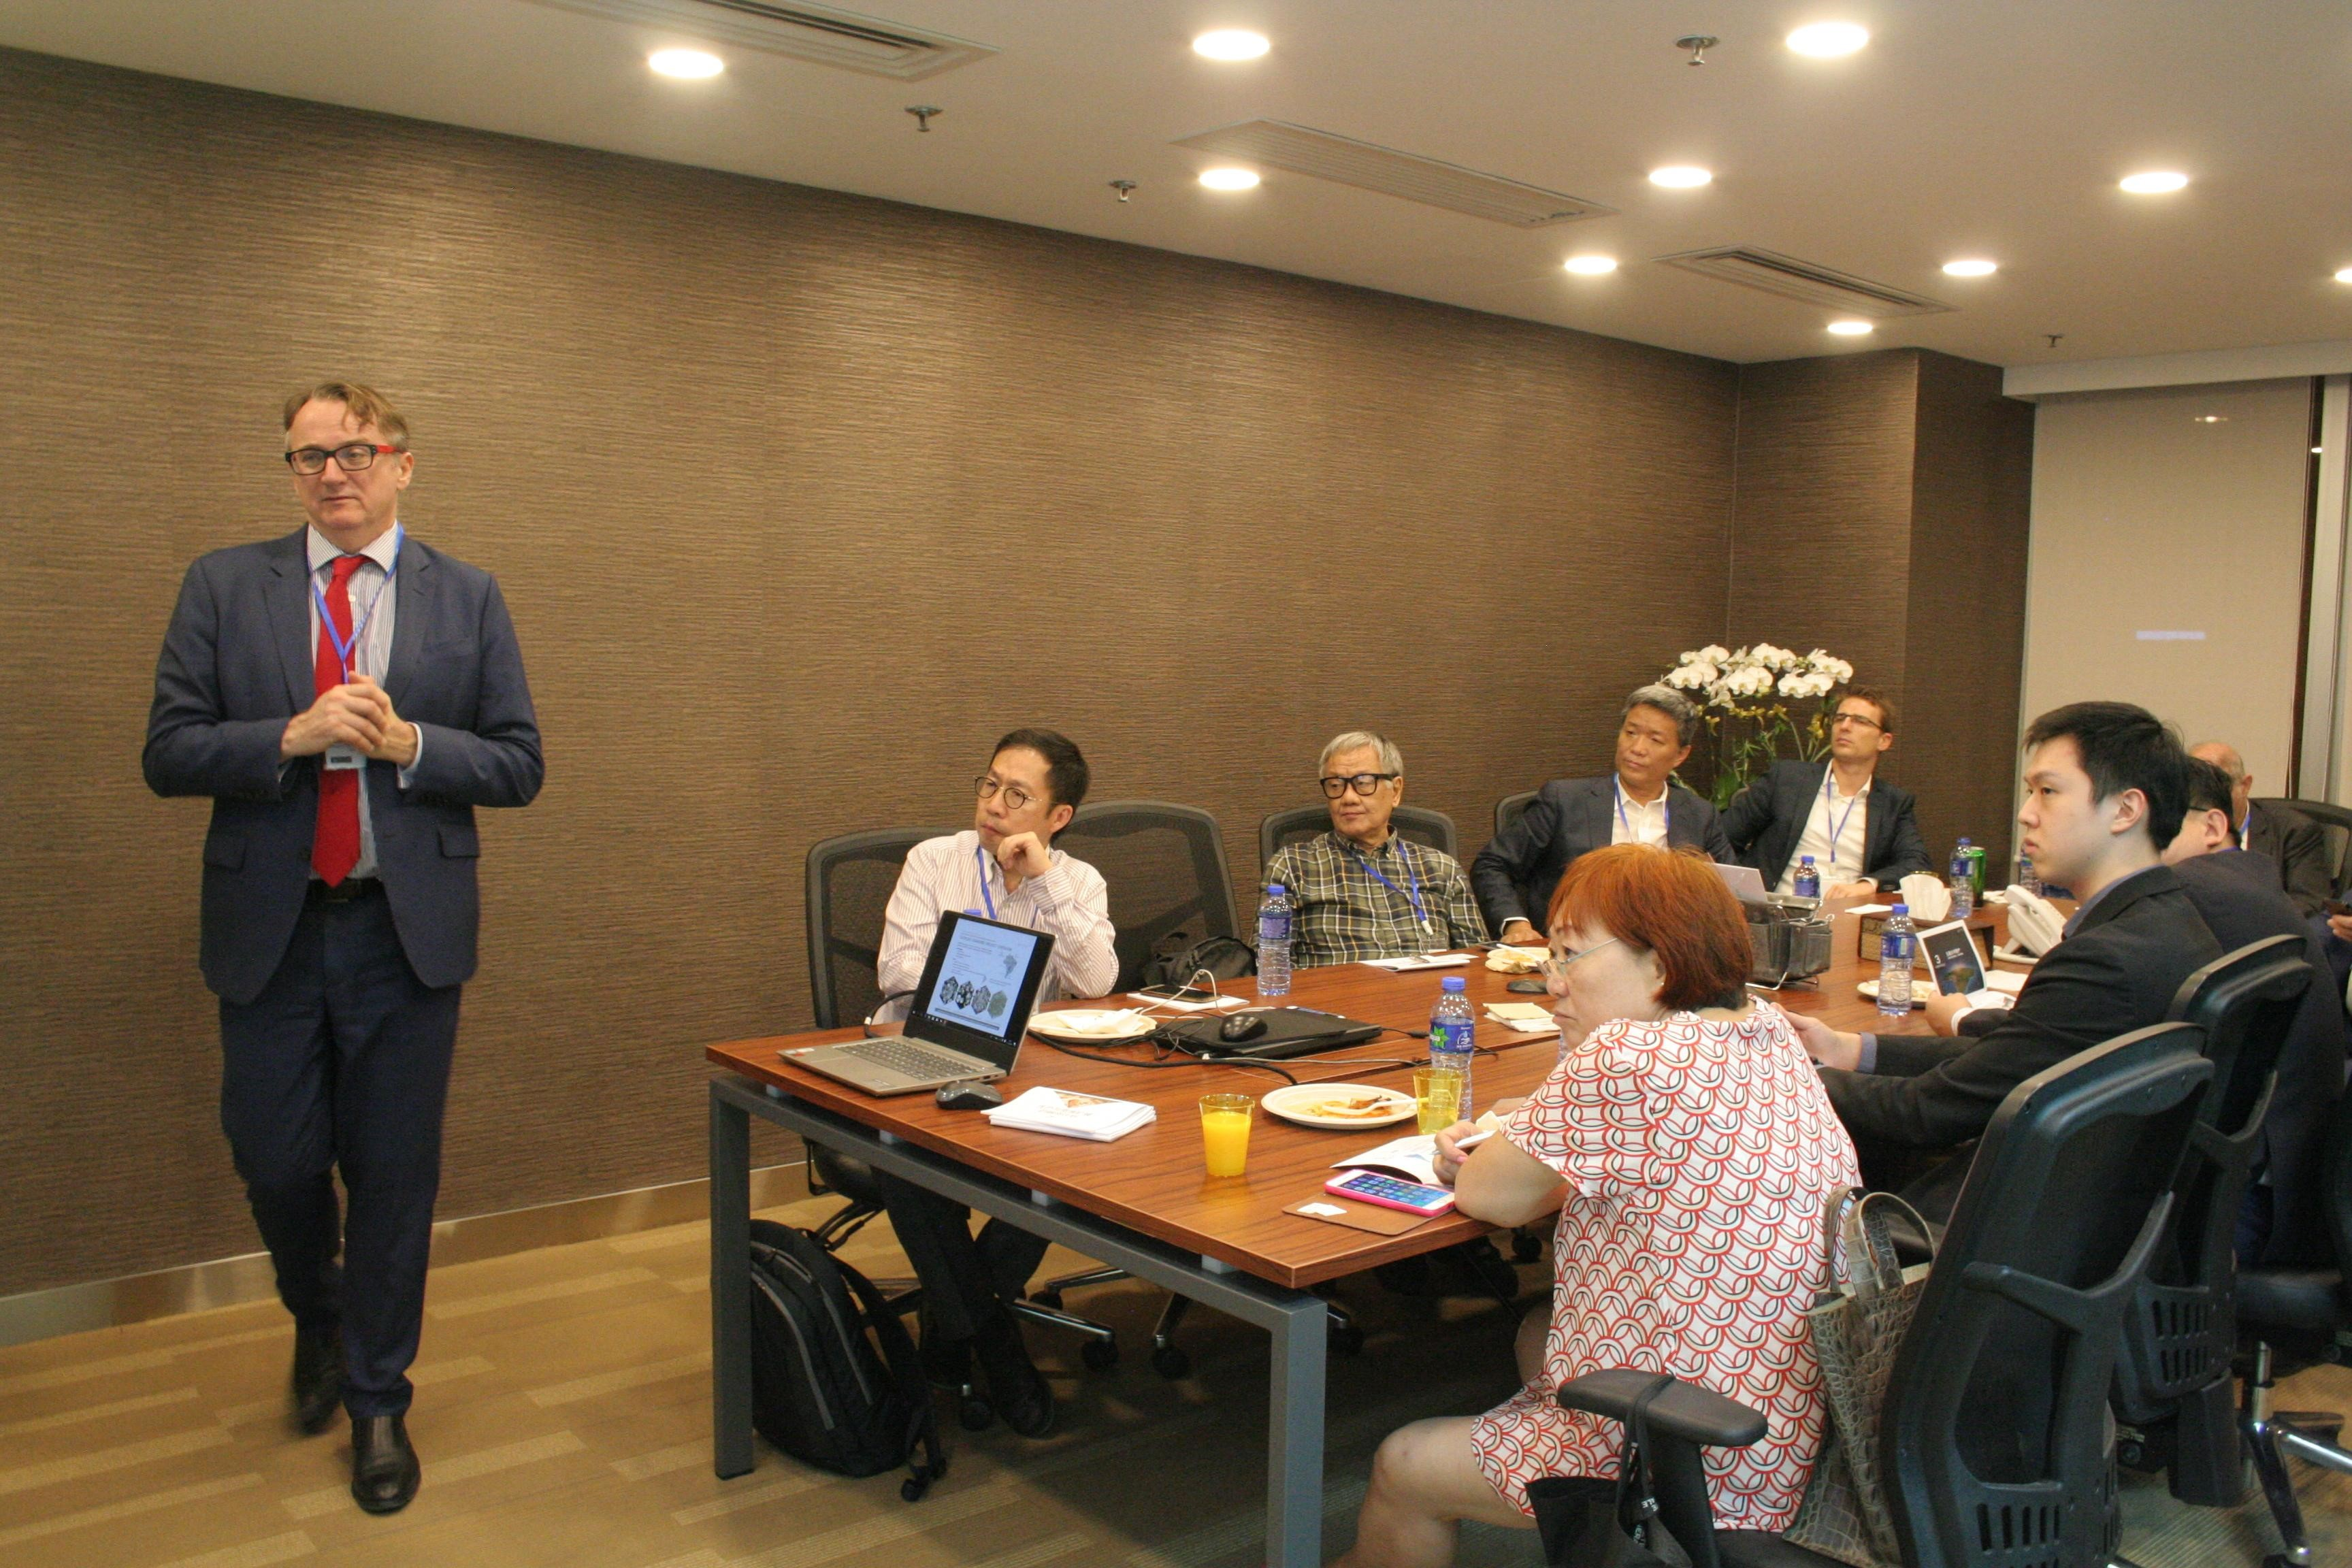 Jeremy South, Senior VP and CFO presenting at the HKIMA Conference in Hong Kong.